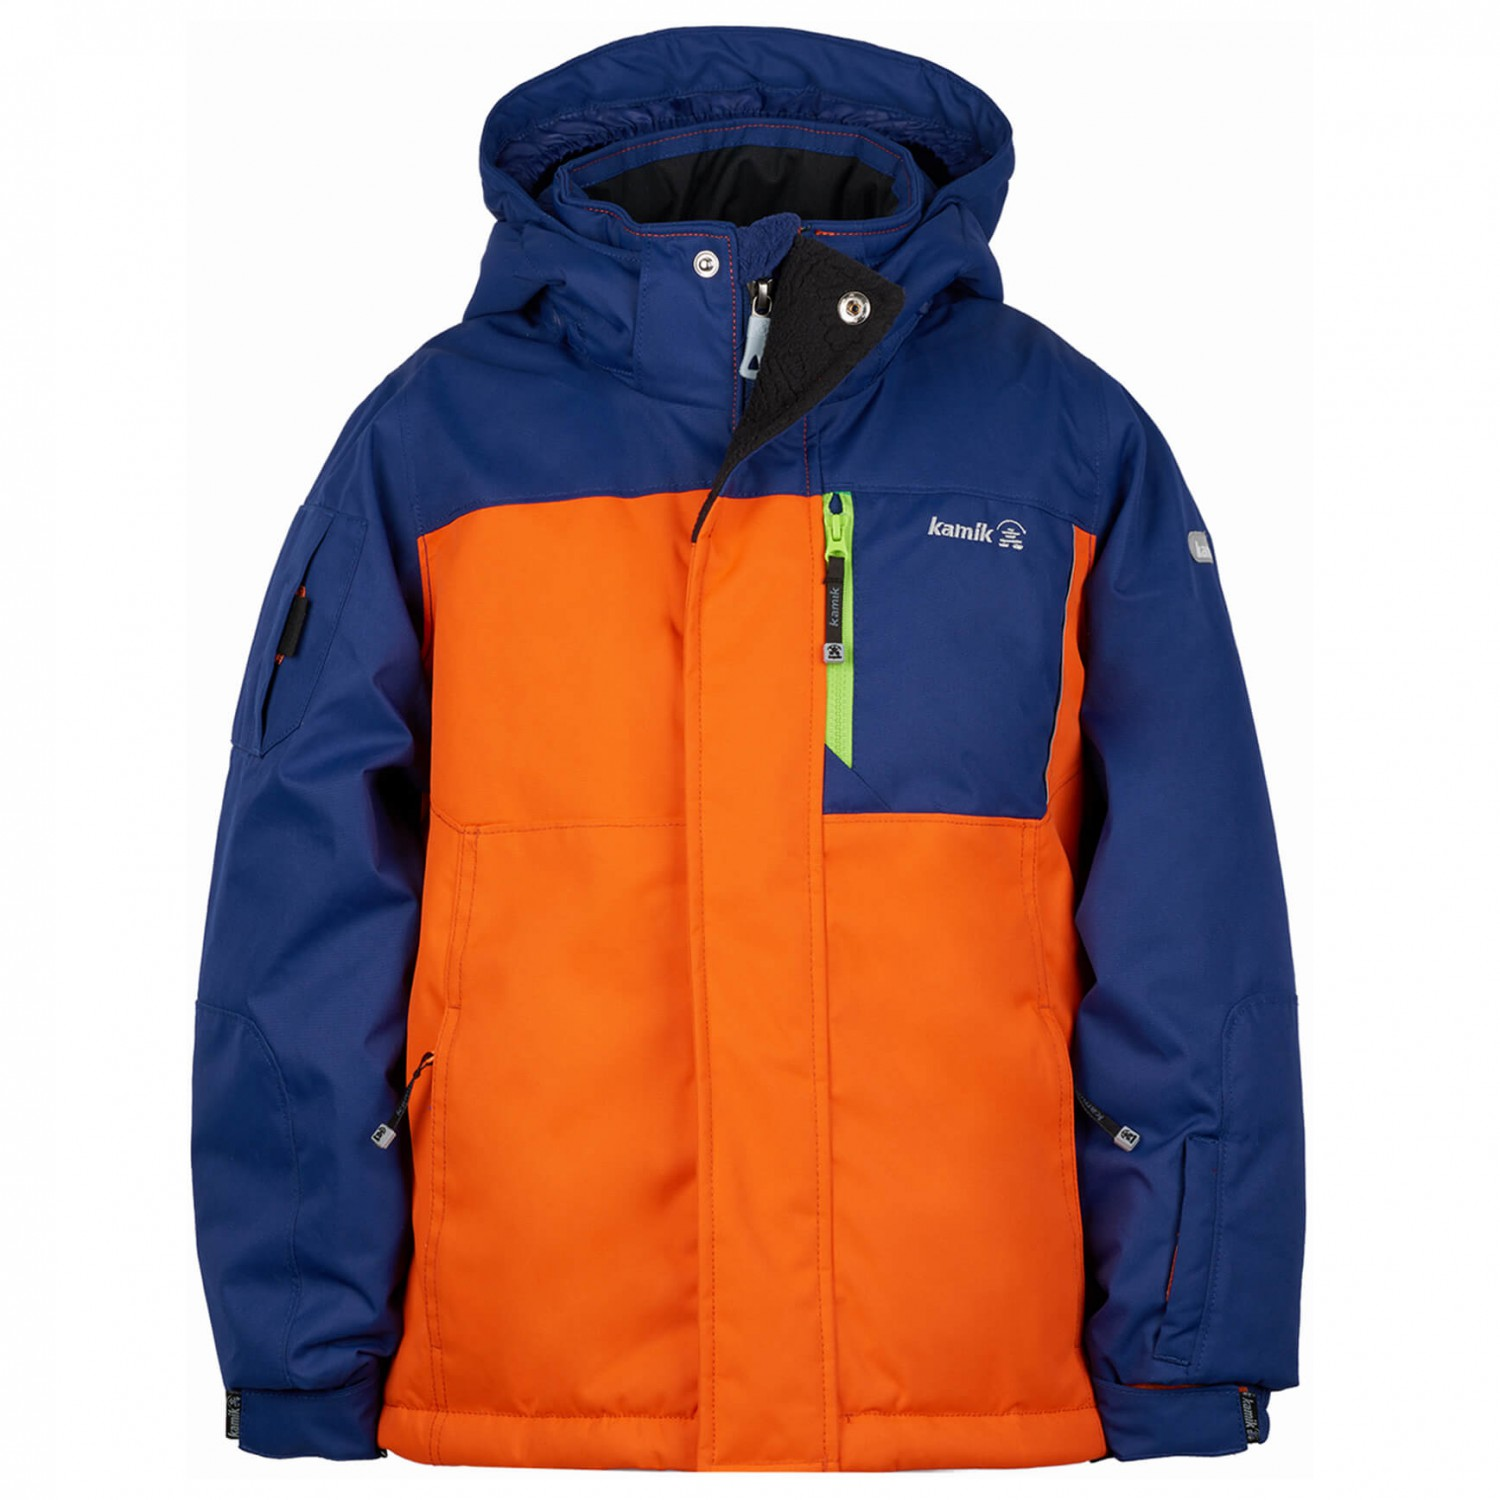 Review the top rated Ski Jackets for Kids for Sep based on consumer truedfil3gz.gq Shipping · Today's Top Picks · Five Star Products · Best ValueTypes: Robot Vacuums, Mattress Toppers, Pillows, Air Mattresses, 3D Printers.